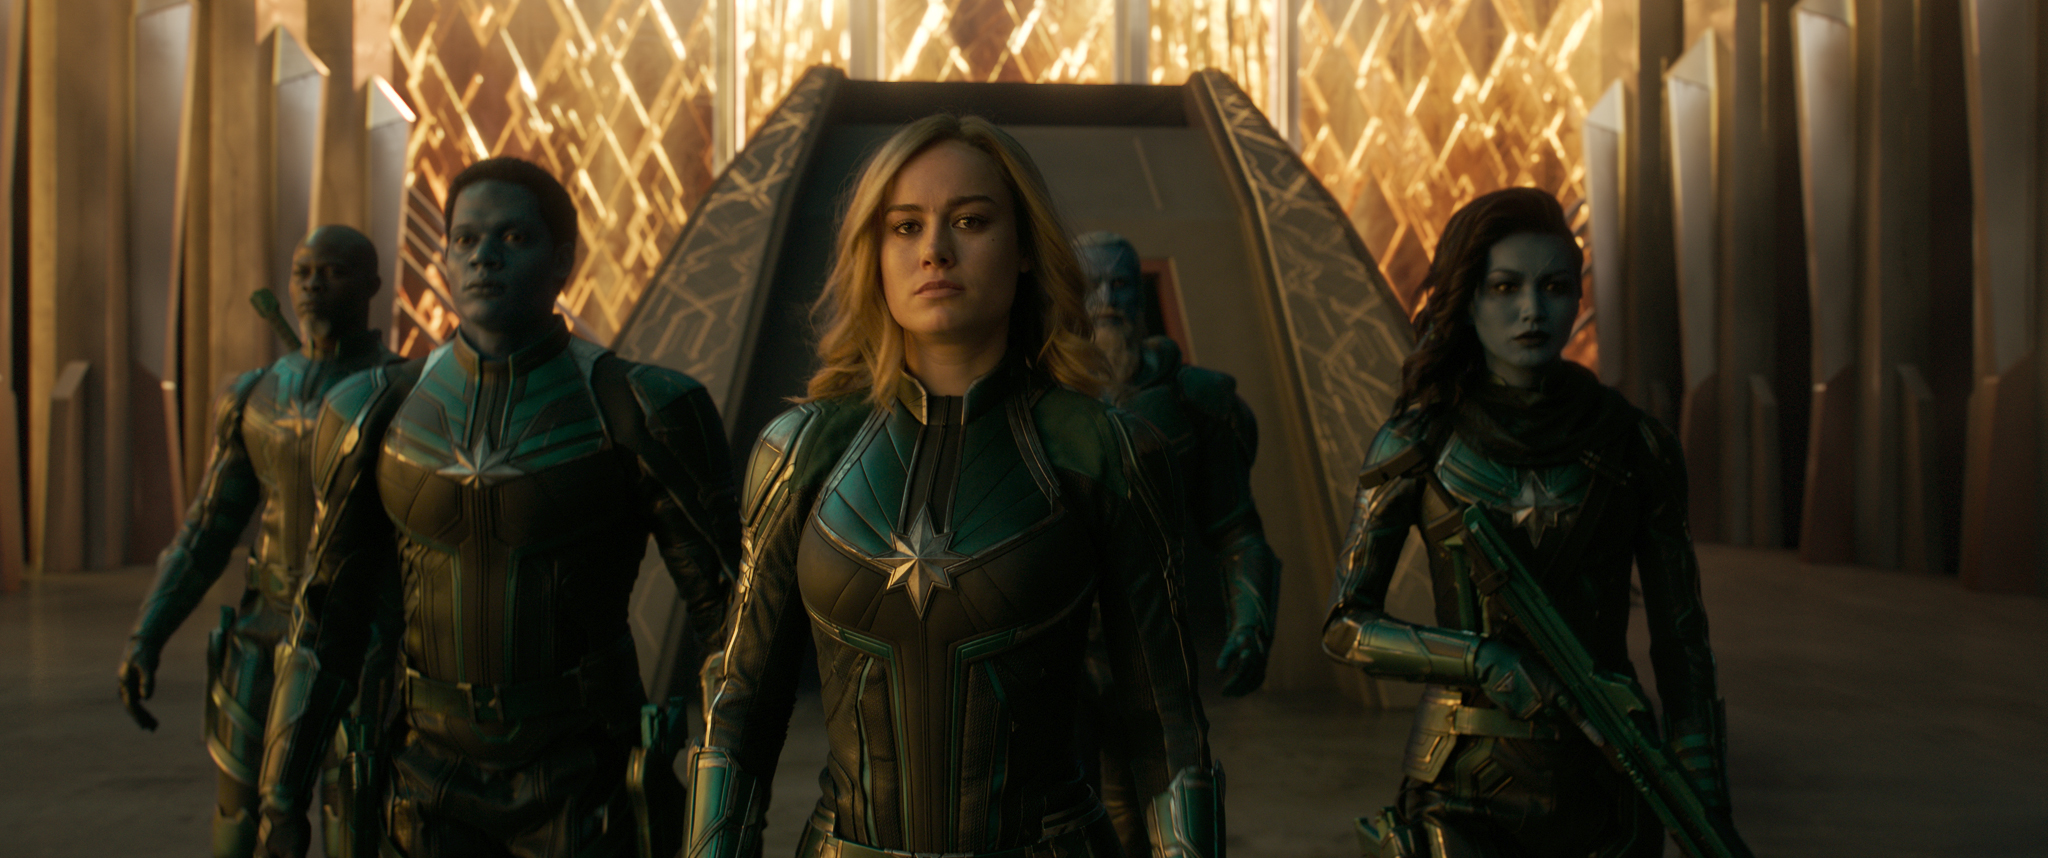 Captain Marvel Hi-Res Still 2 - Carol Danvers, Starforce Team